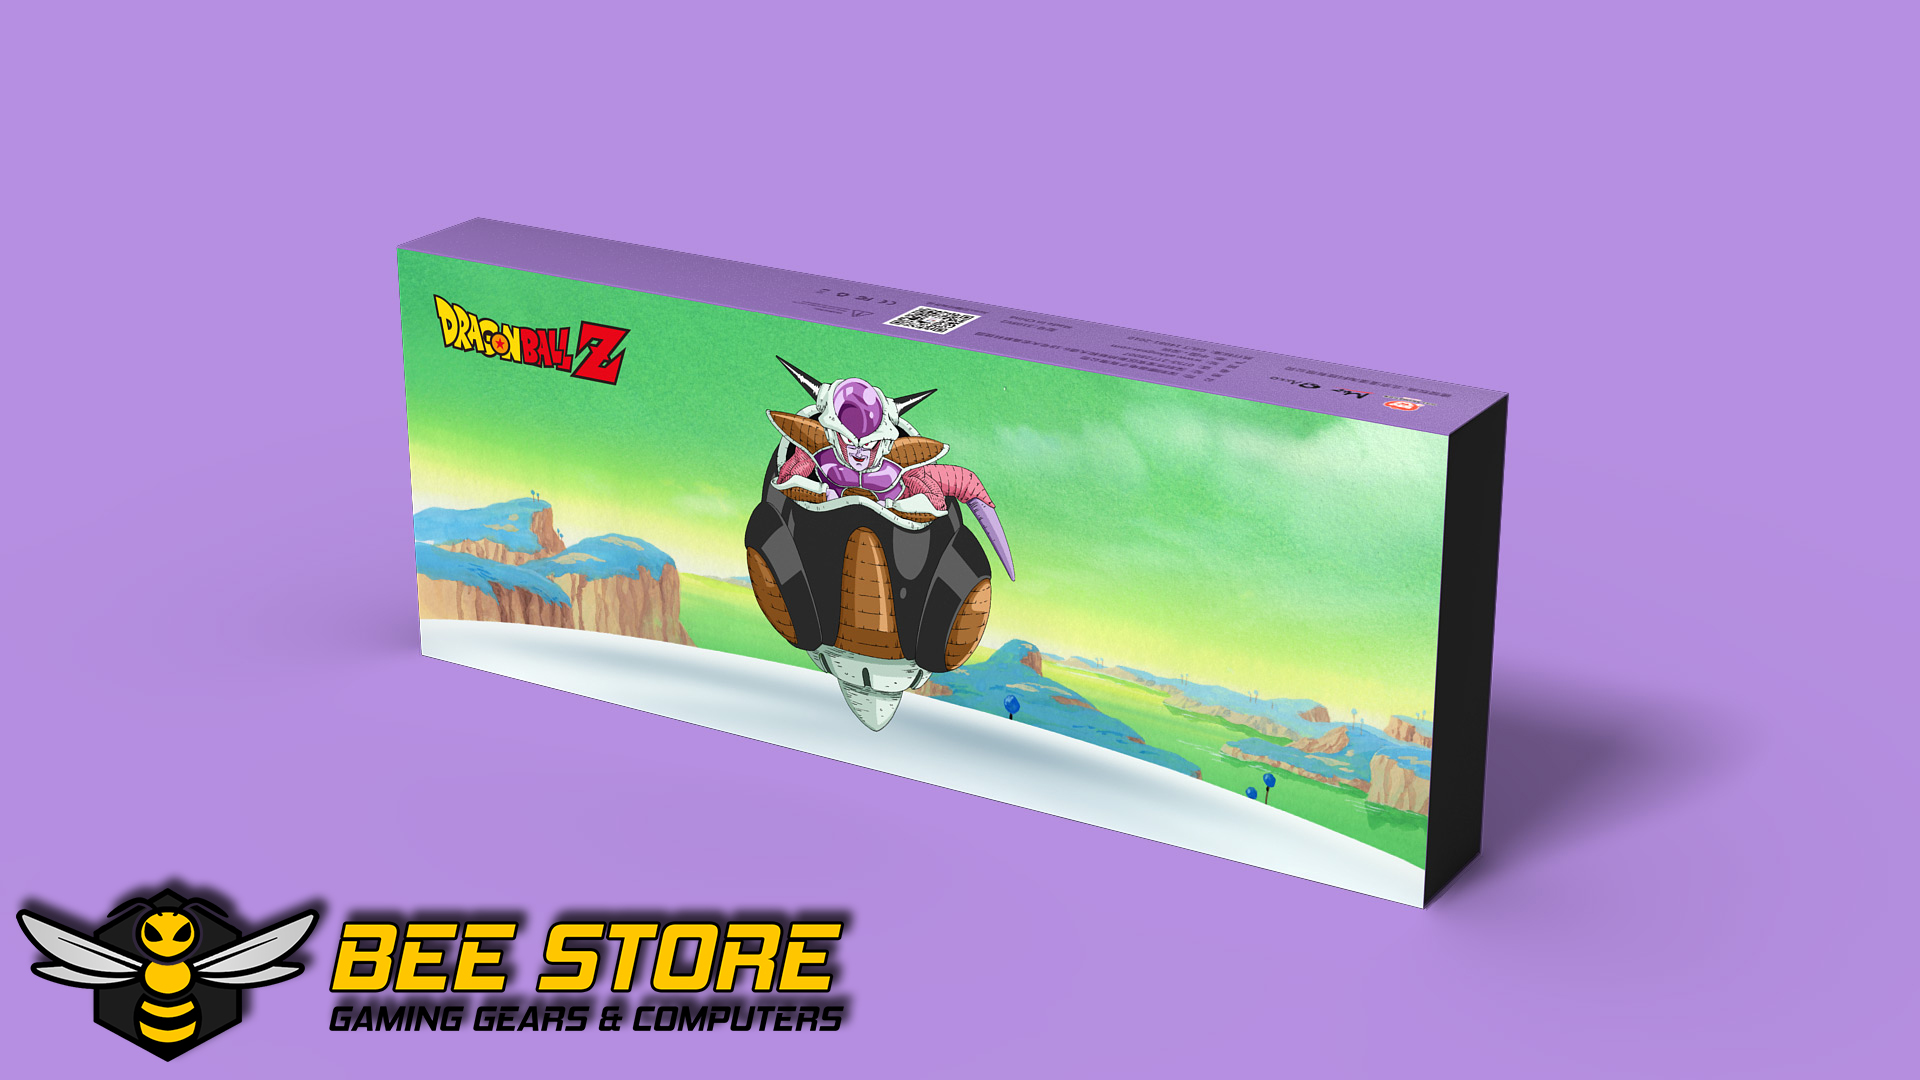 AKKO-3108-Frieza-Dragonball-z-beegaming-11